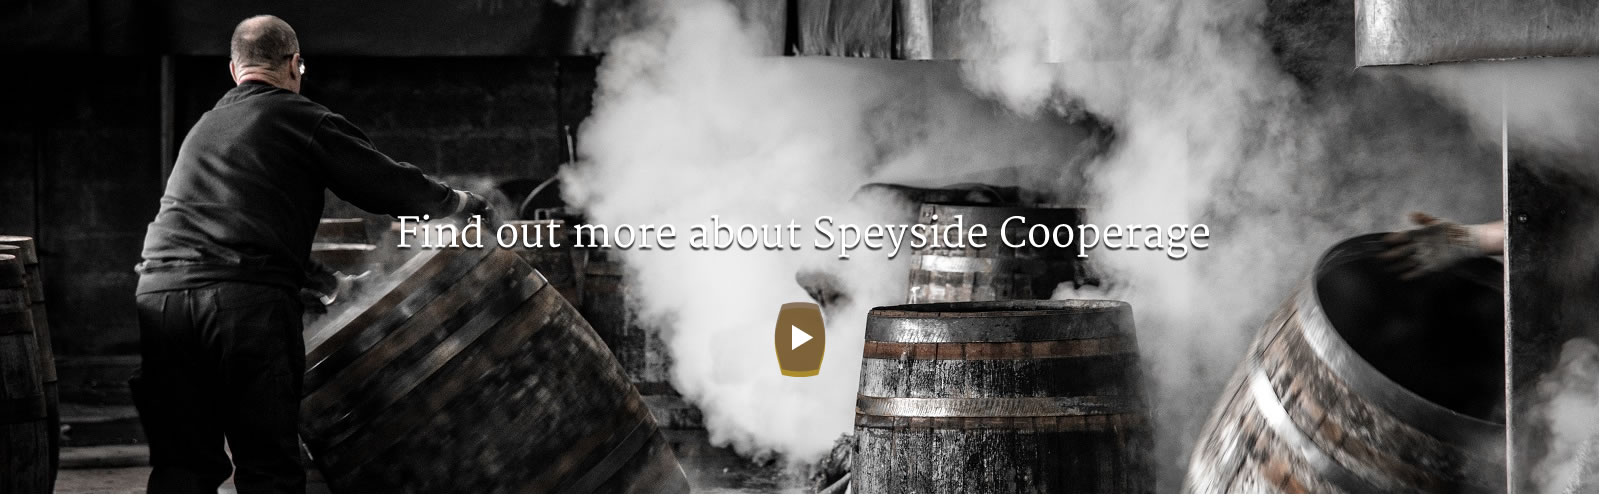 Speyside Cooperage Visitor Attraction Craigellachie Moray